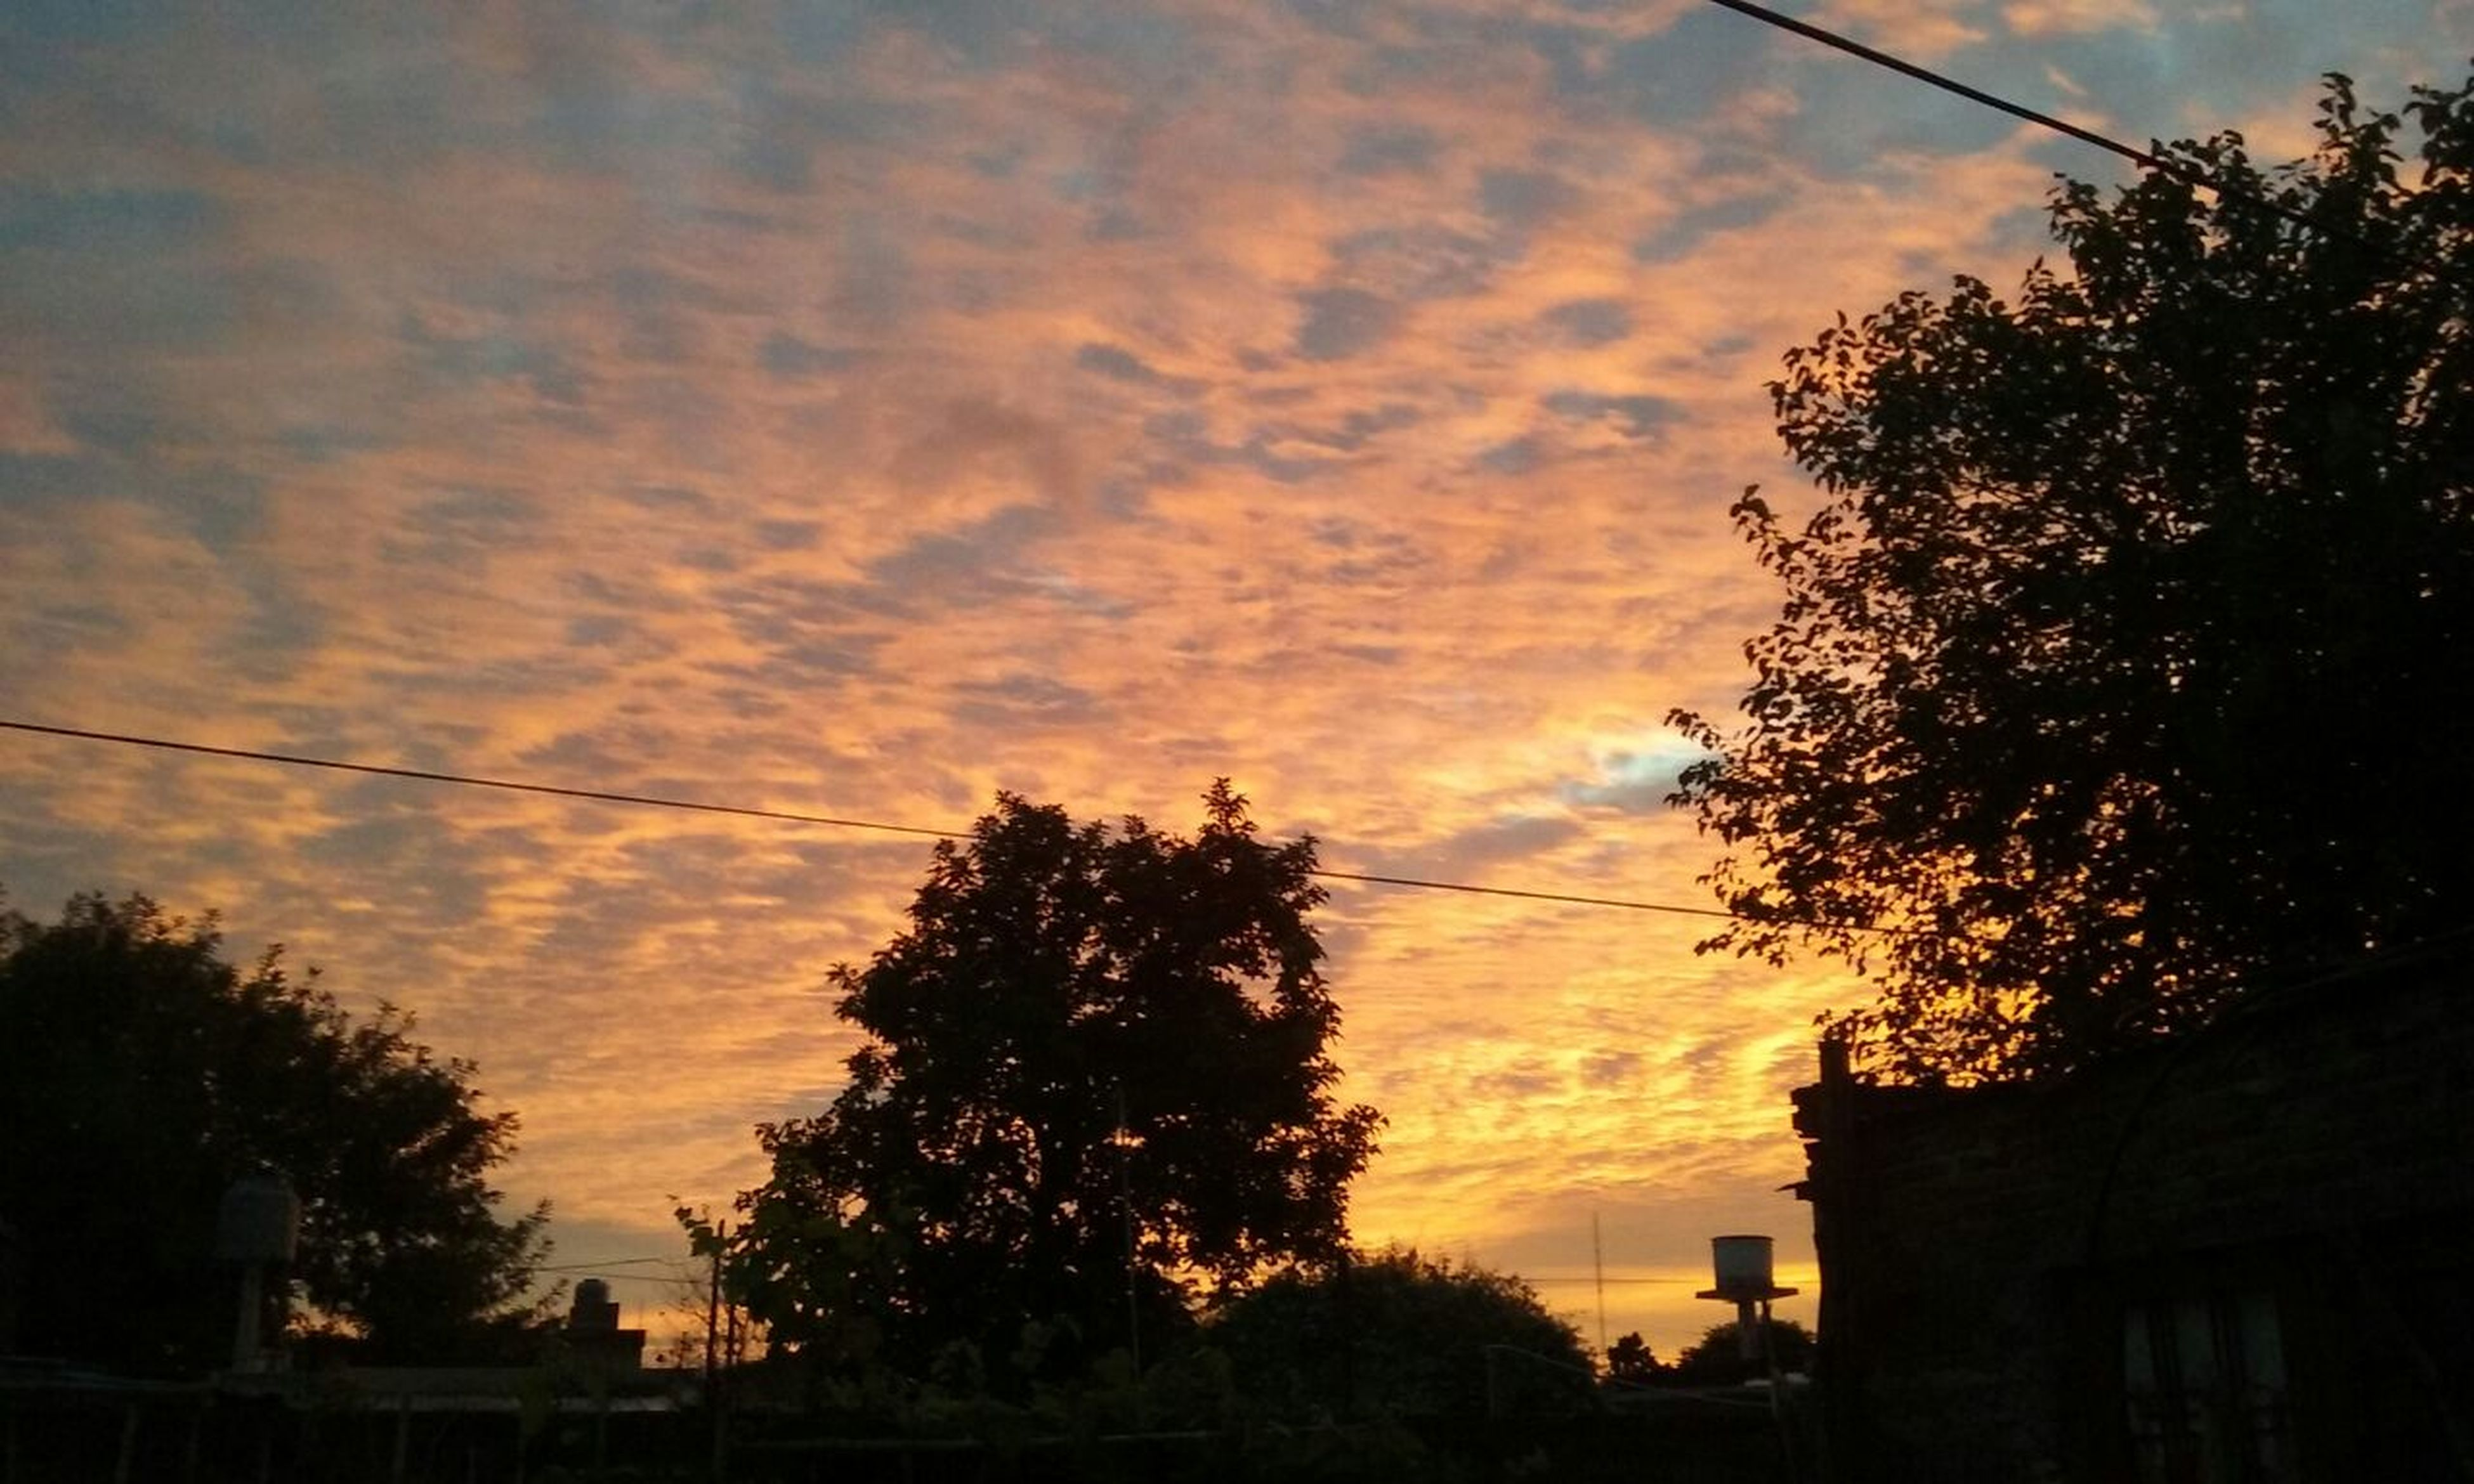 tree, sunset, sky, cloud - sky, nature, orange color, beauty in nature, growth, no people, silhouette, outdoors, scenics, day